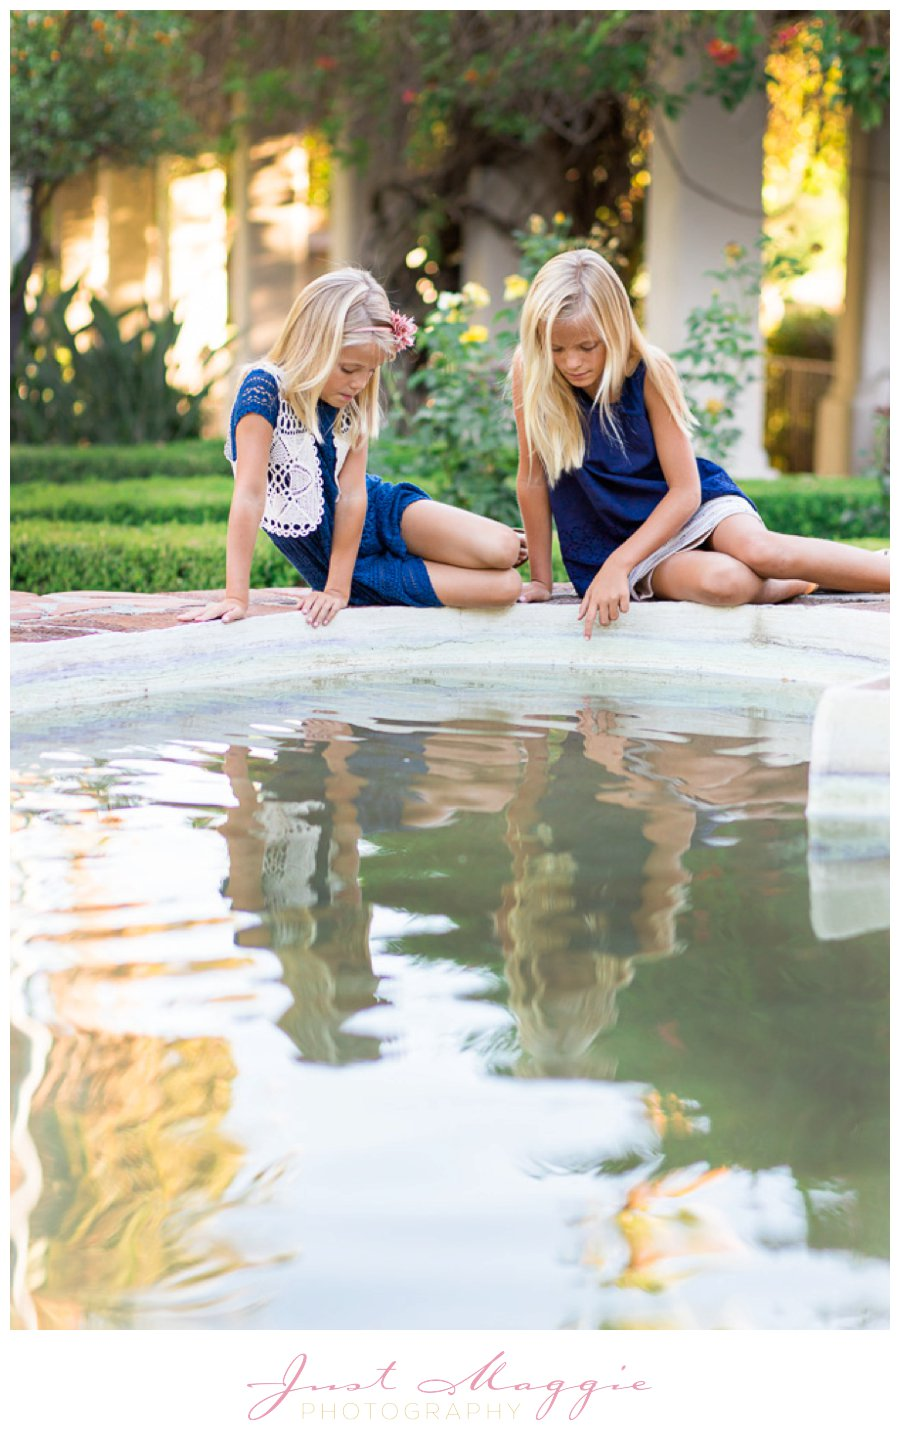 Sibling Portraits by Just Maggie Photography - Los Angeles Family Portrait Photographer